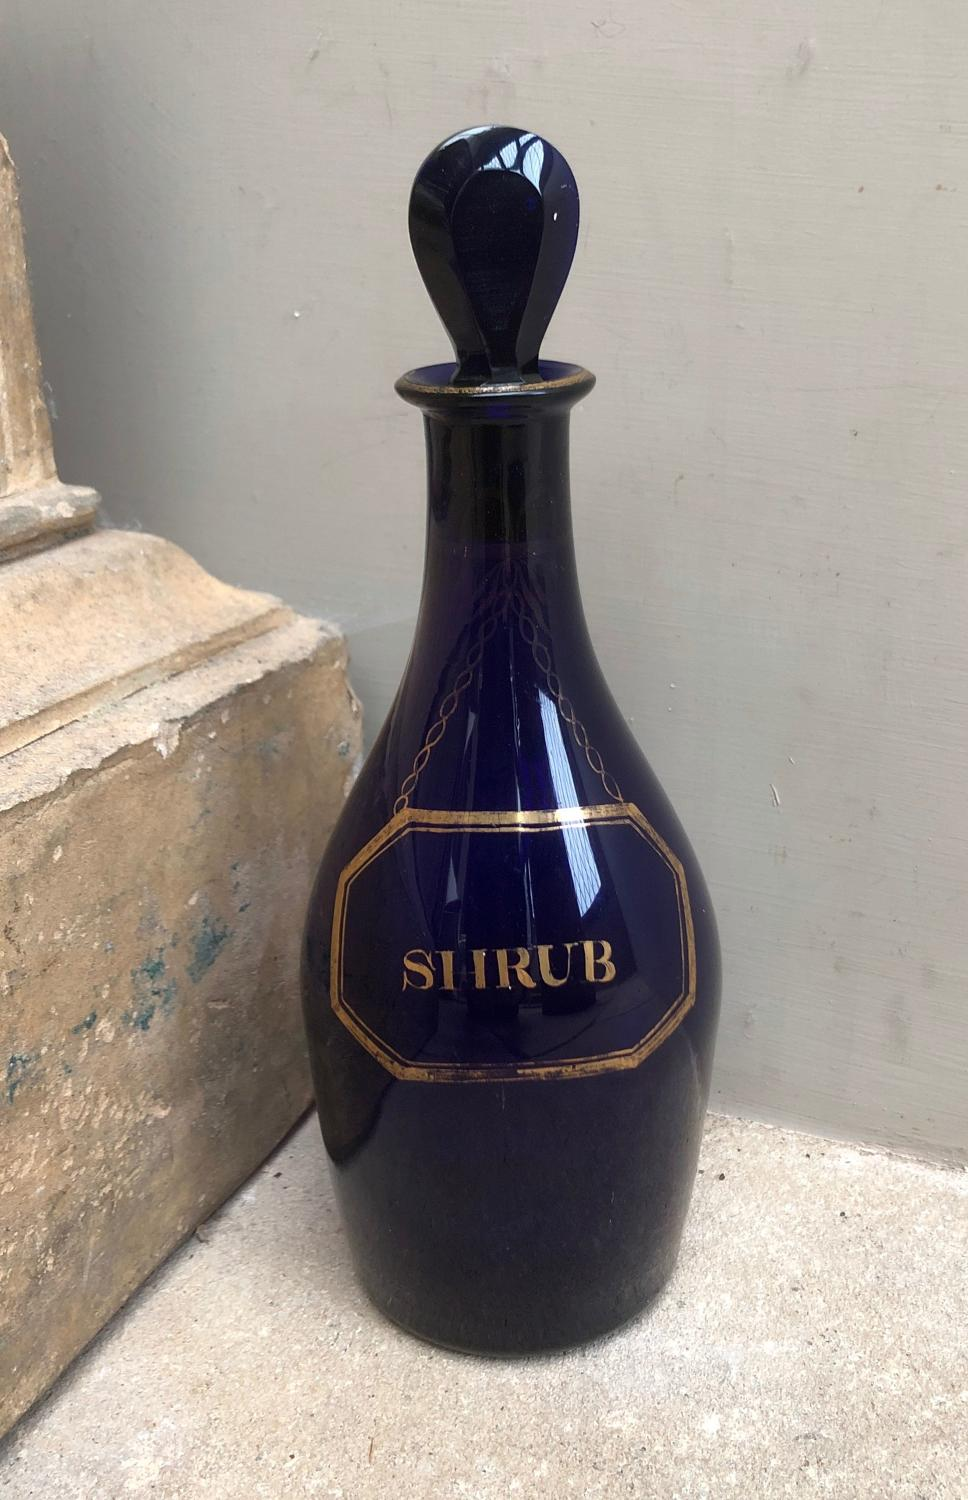 Rare Georgian Cobalt Blue Glass Decanter for Shrub - Gilt Detailing